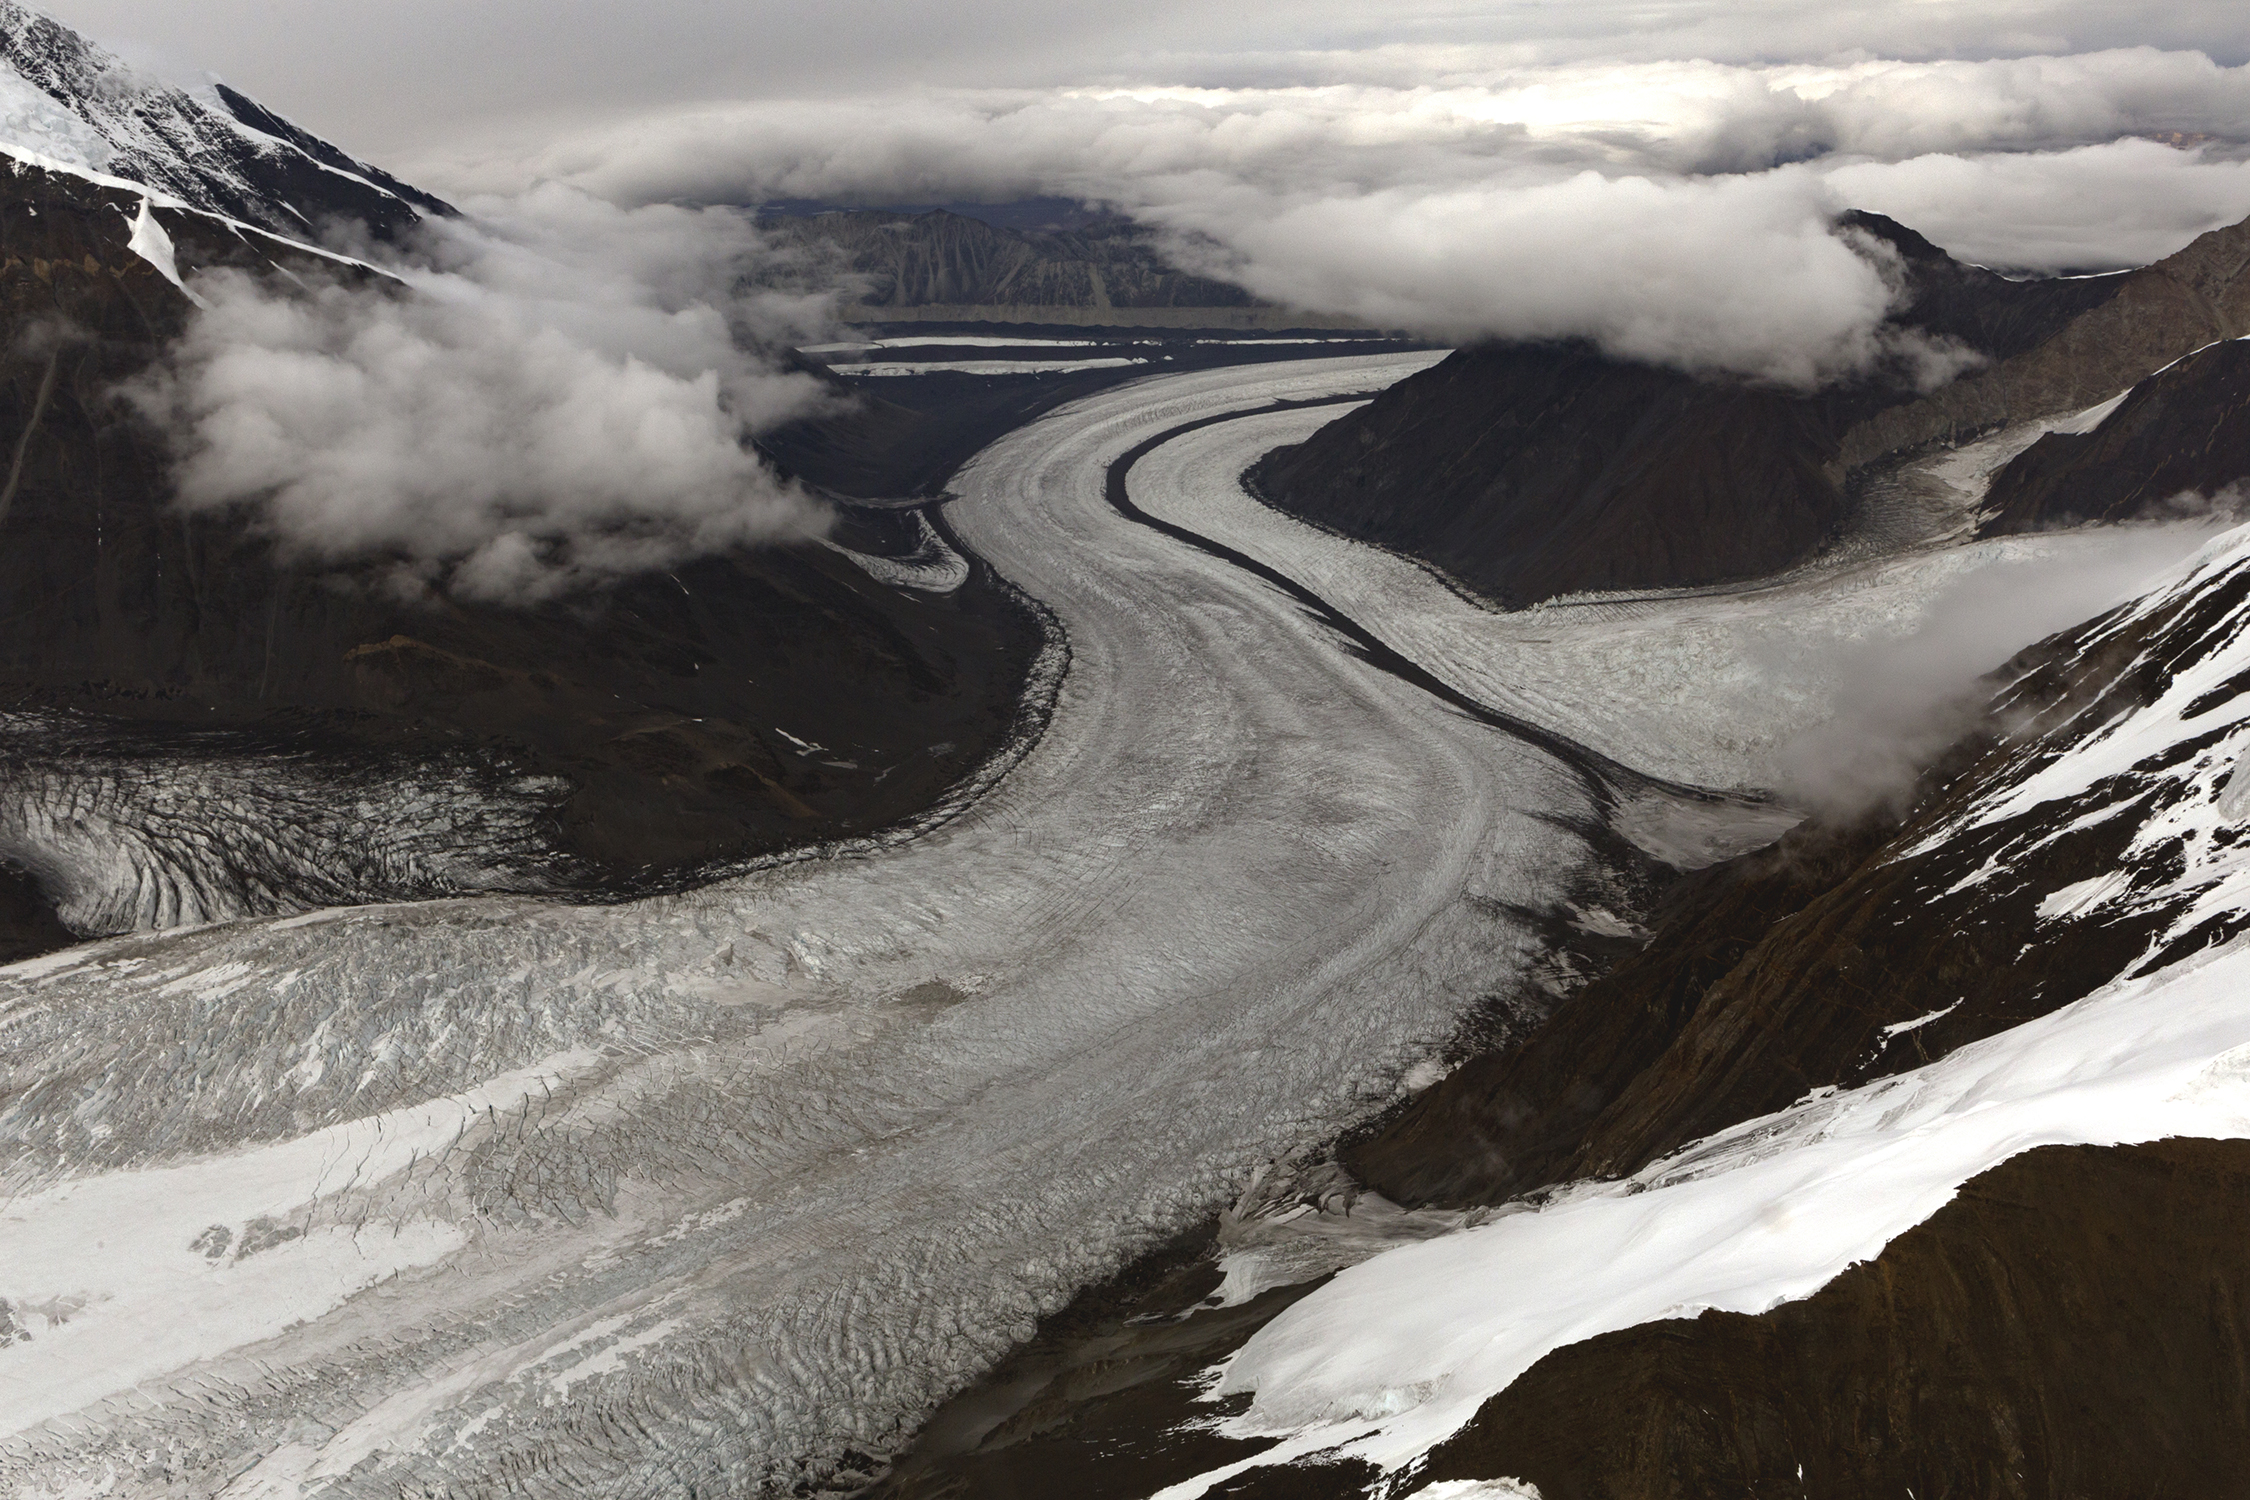 Ruth Glacier and medial moraines, dark stripes of rock debris flowing down the middle. © Photo by Gail Fisher